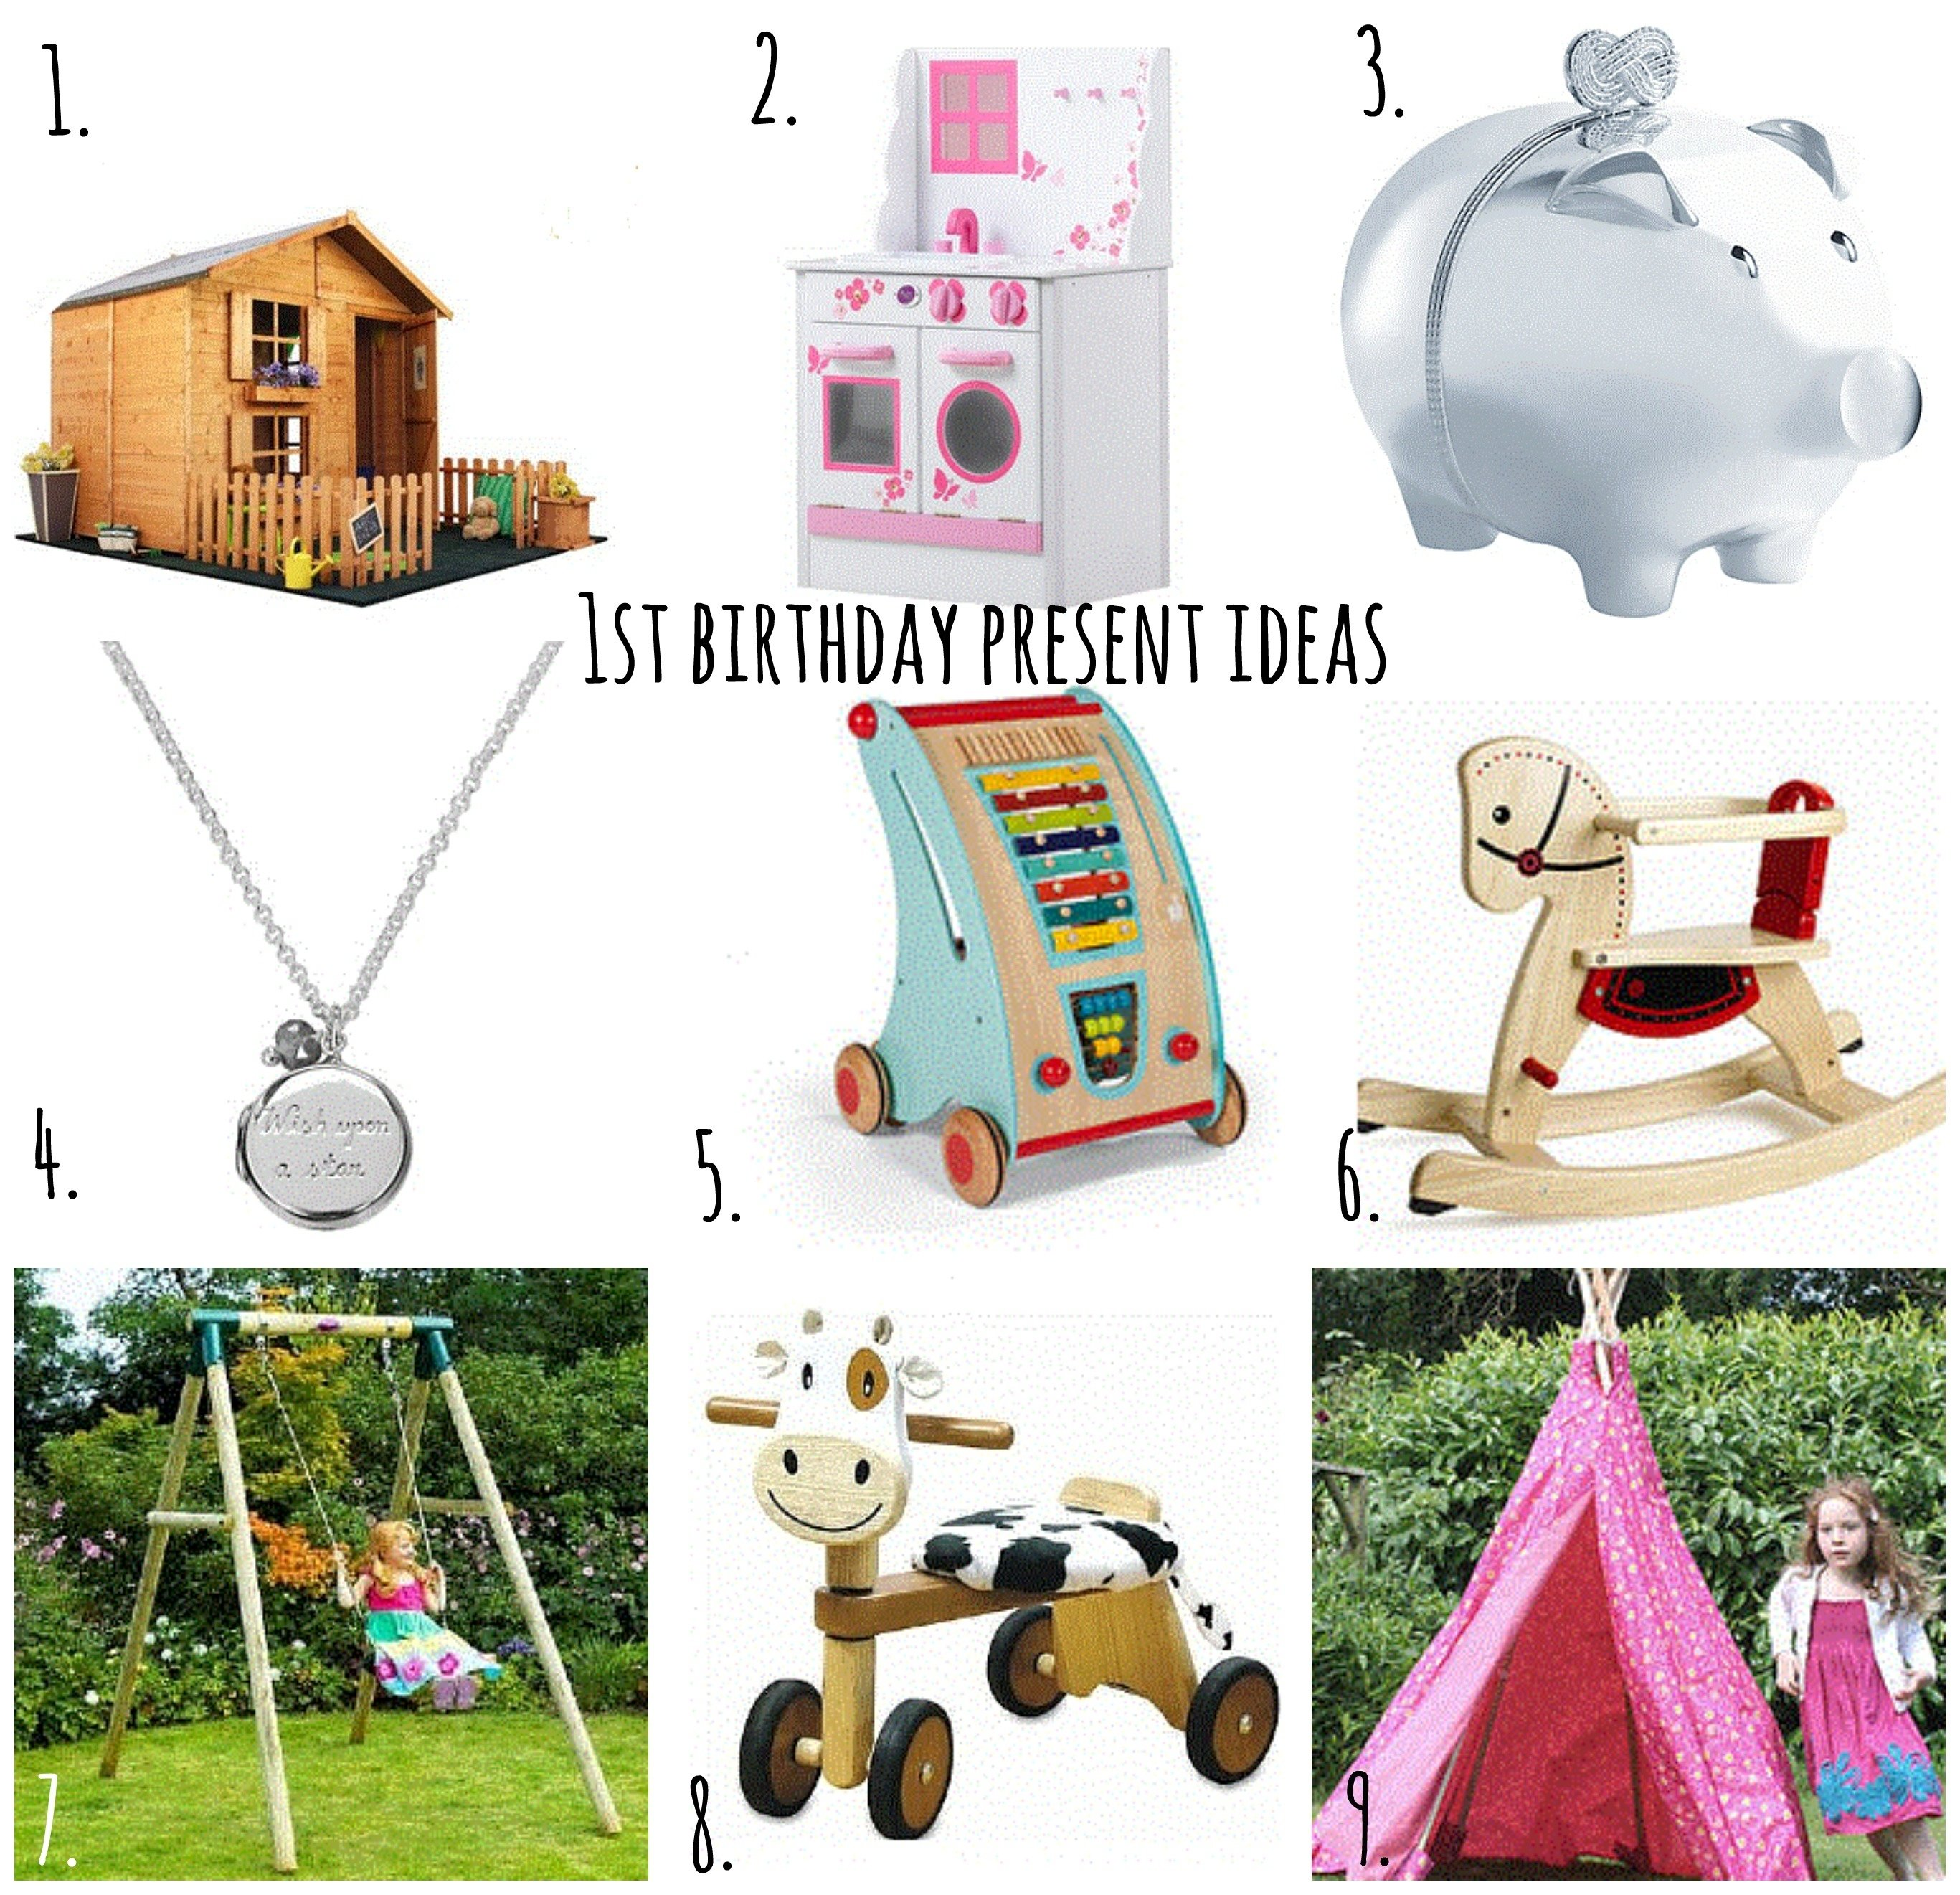 10 Awesome Baby Girl 1St Birthday Gift Ideas do you need 1st birthday present ideas 2